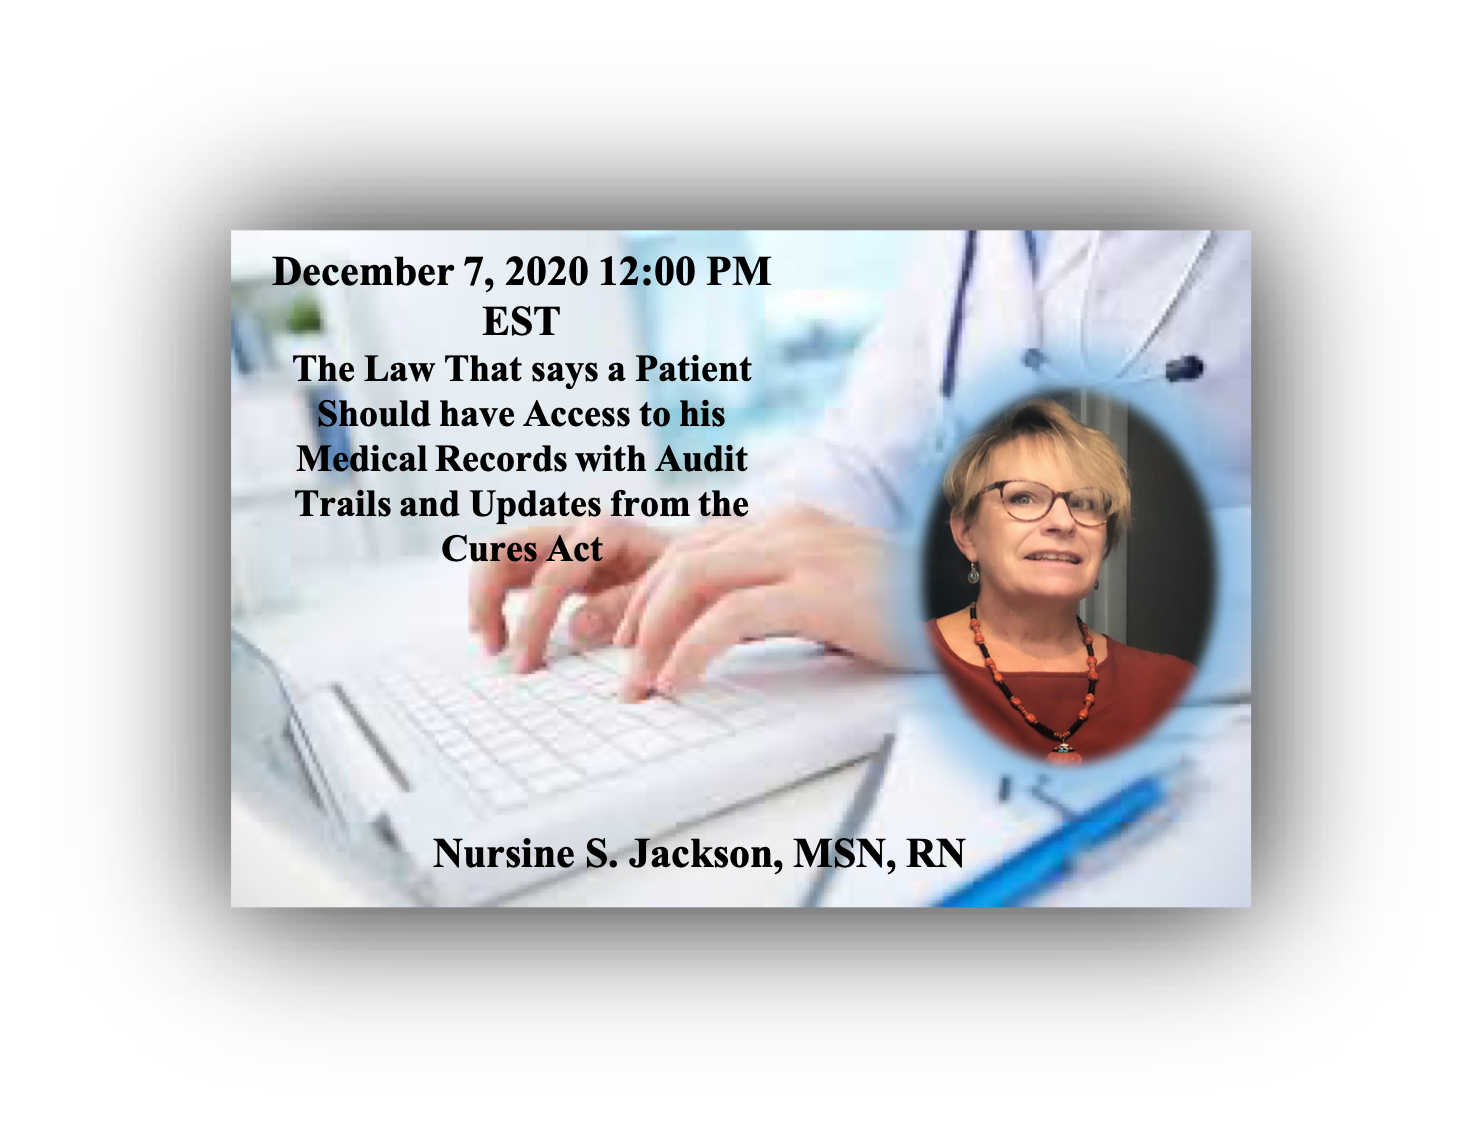 Law_Patient_ Medical_Records_Audit_Trails_Cures_Act_Nursine_Jackson